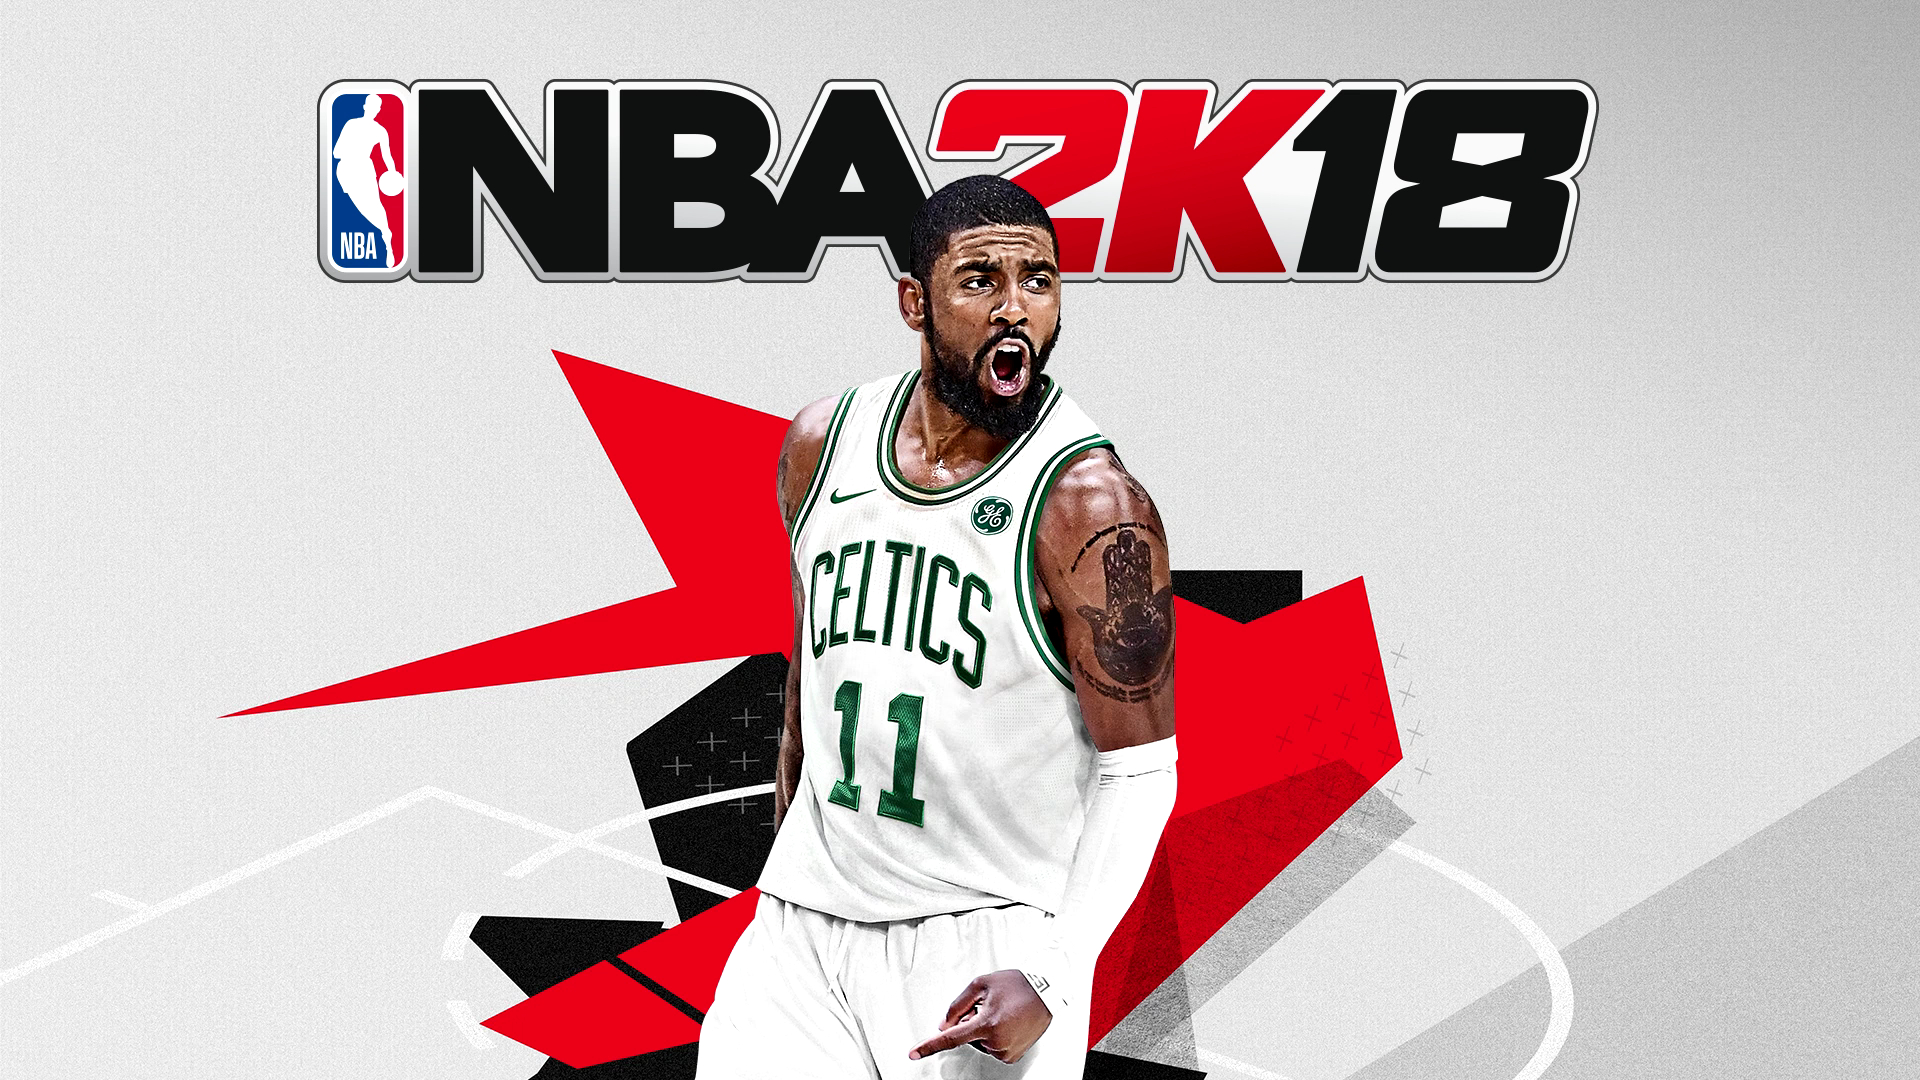 ... nba-2k18-kyrie-irving-celtics-cover-ftr-091817.